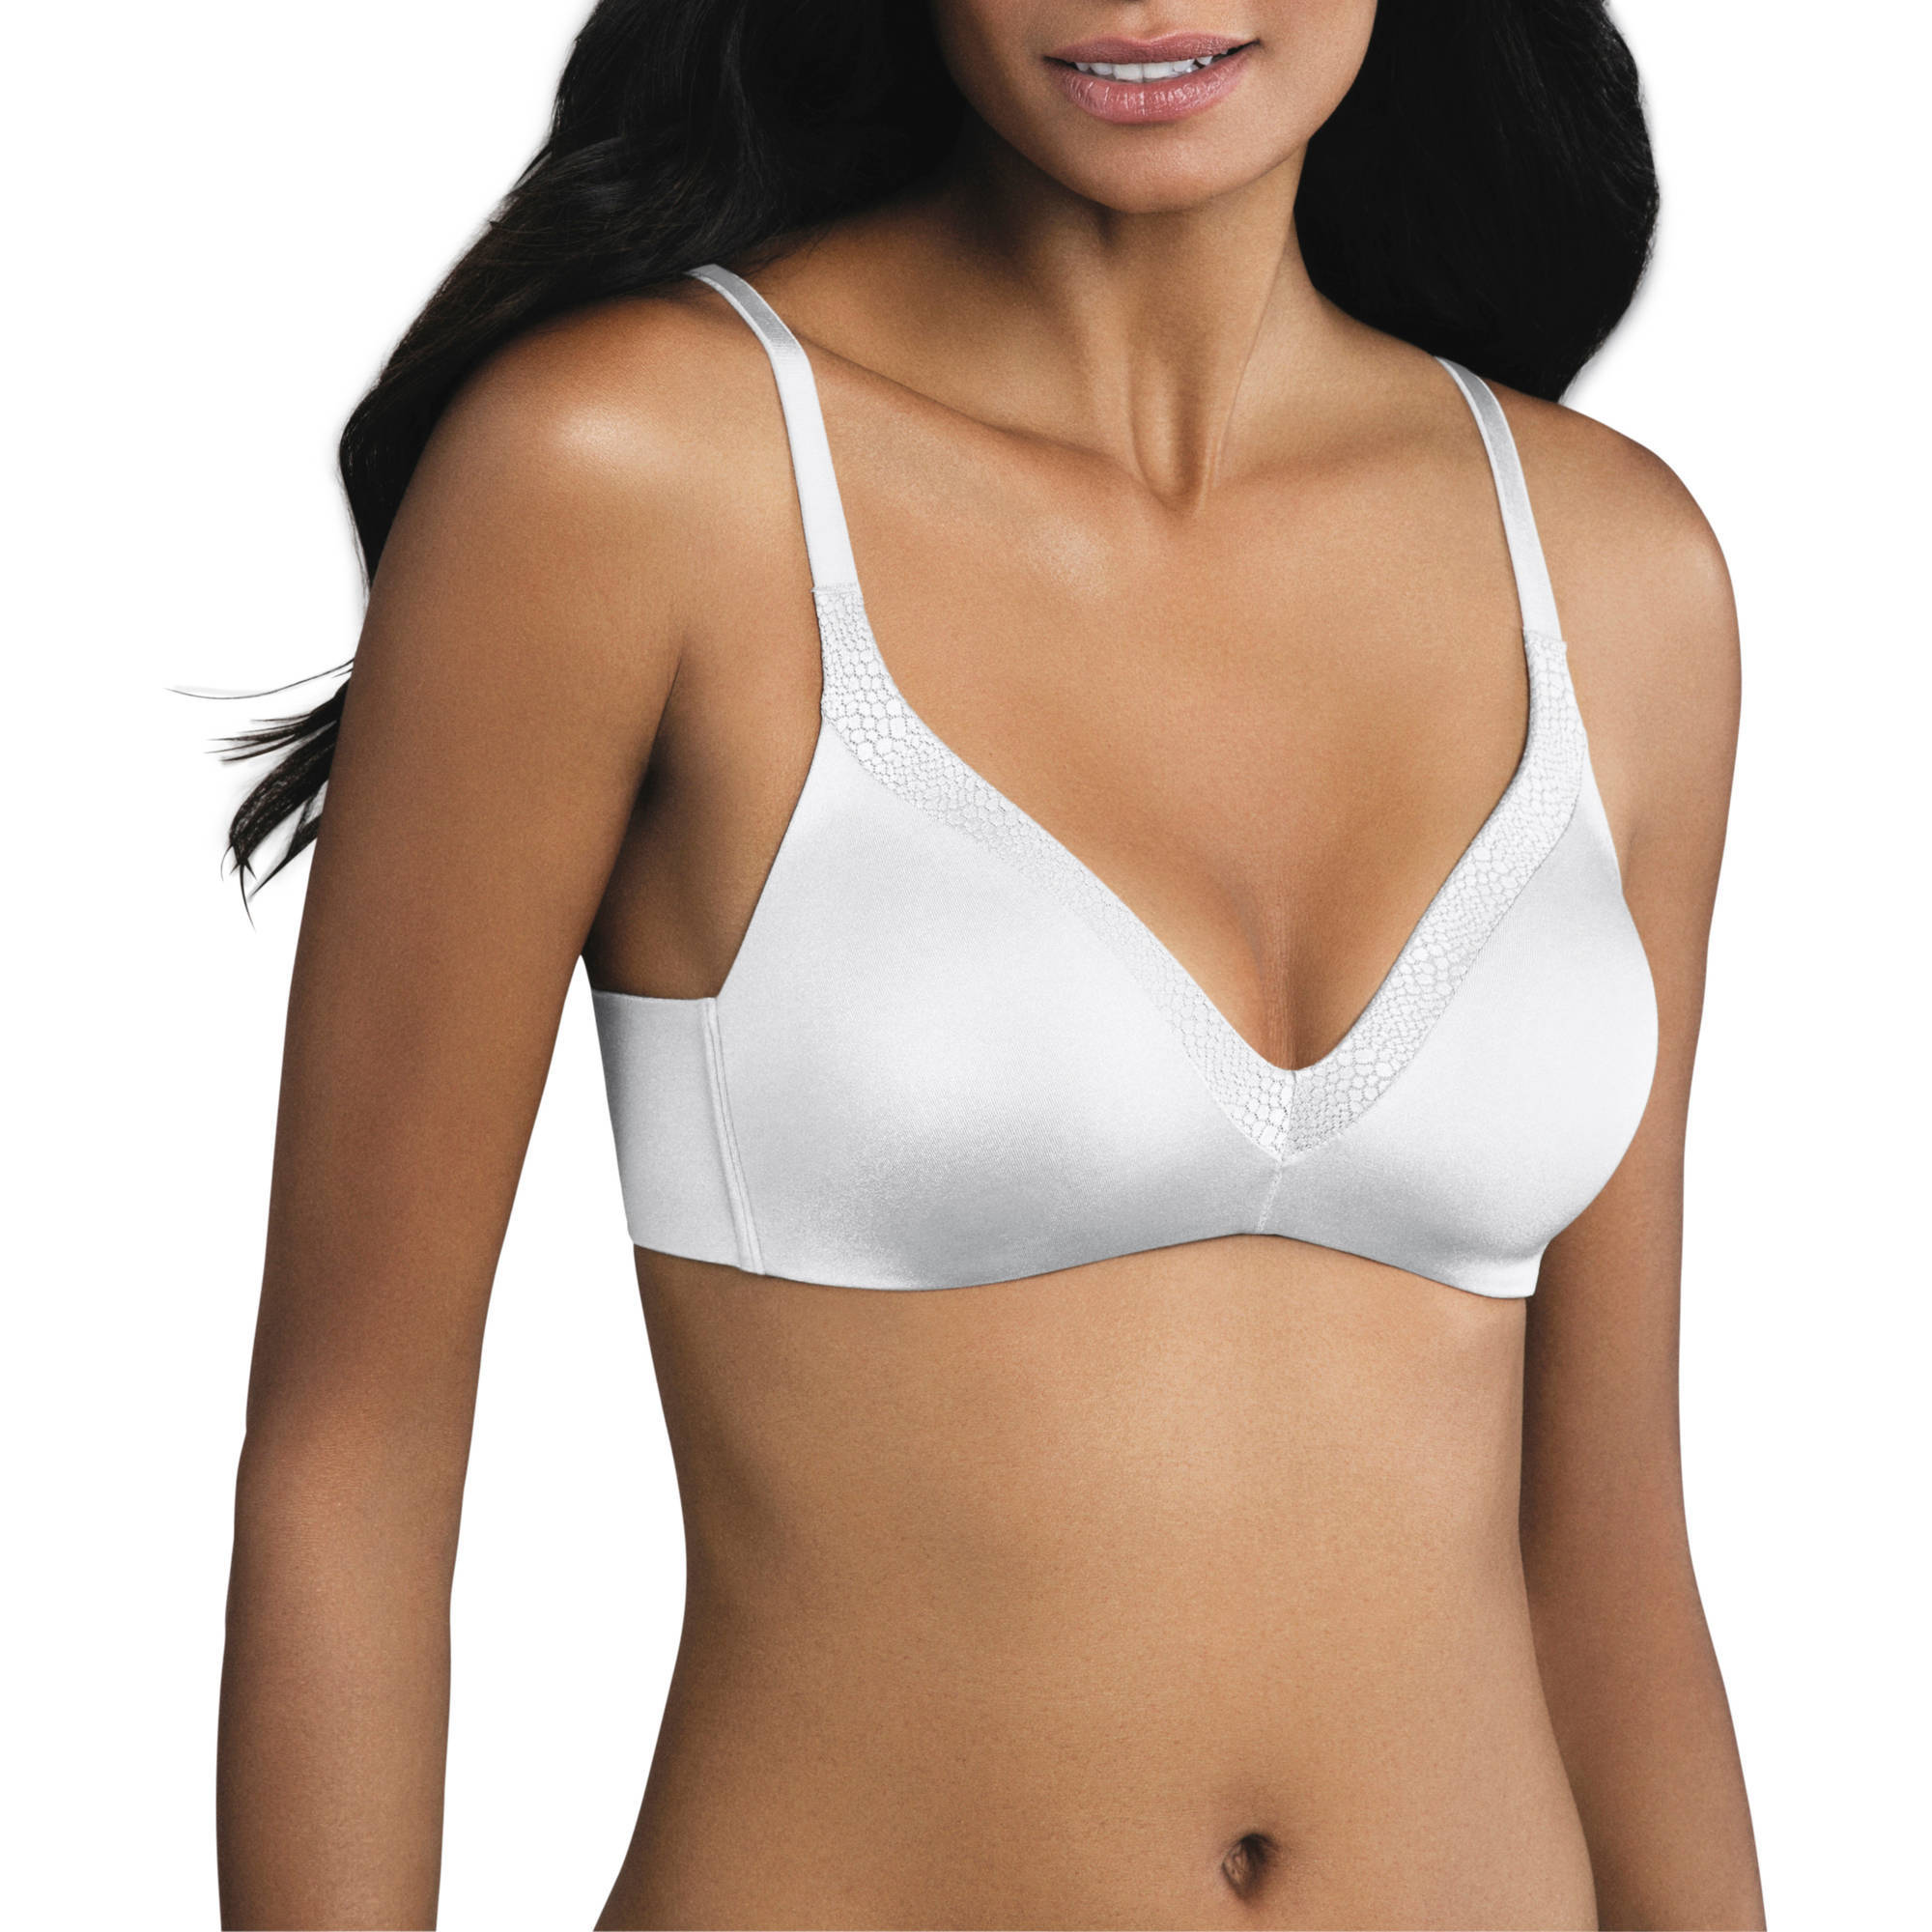 Blissful Benefits by Warner's Women's Back Smoothing Wire-Free Bra